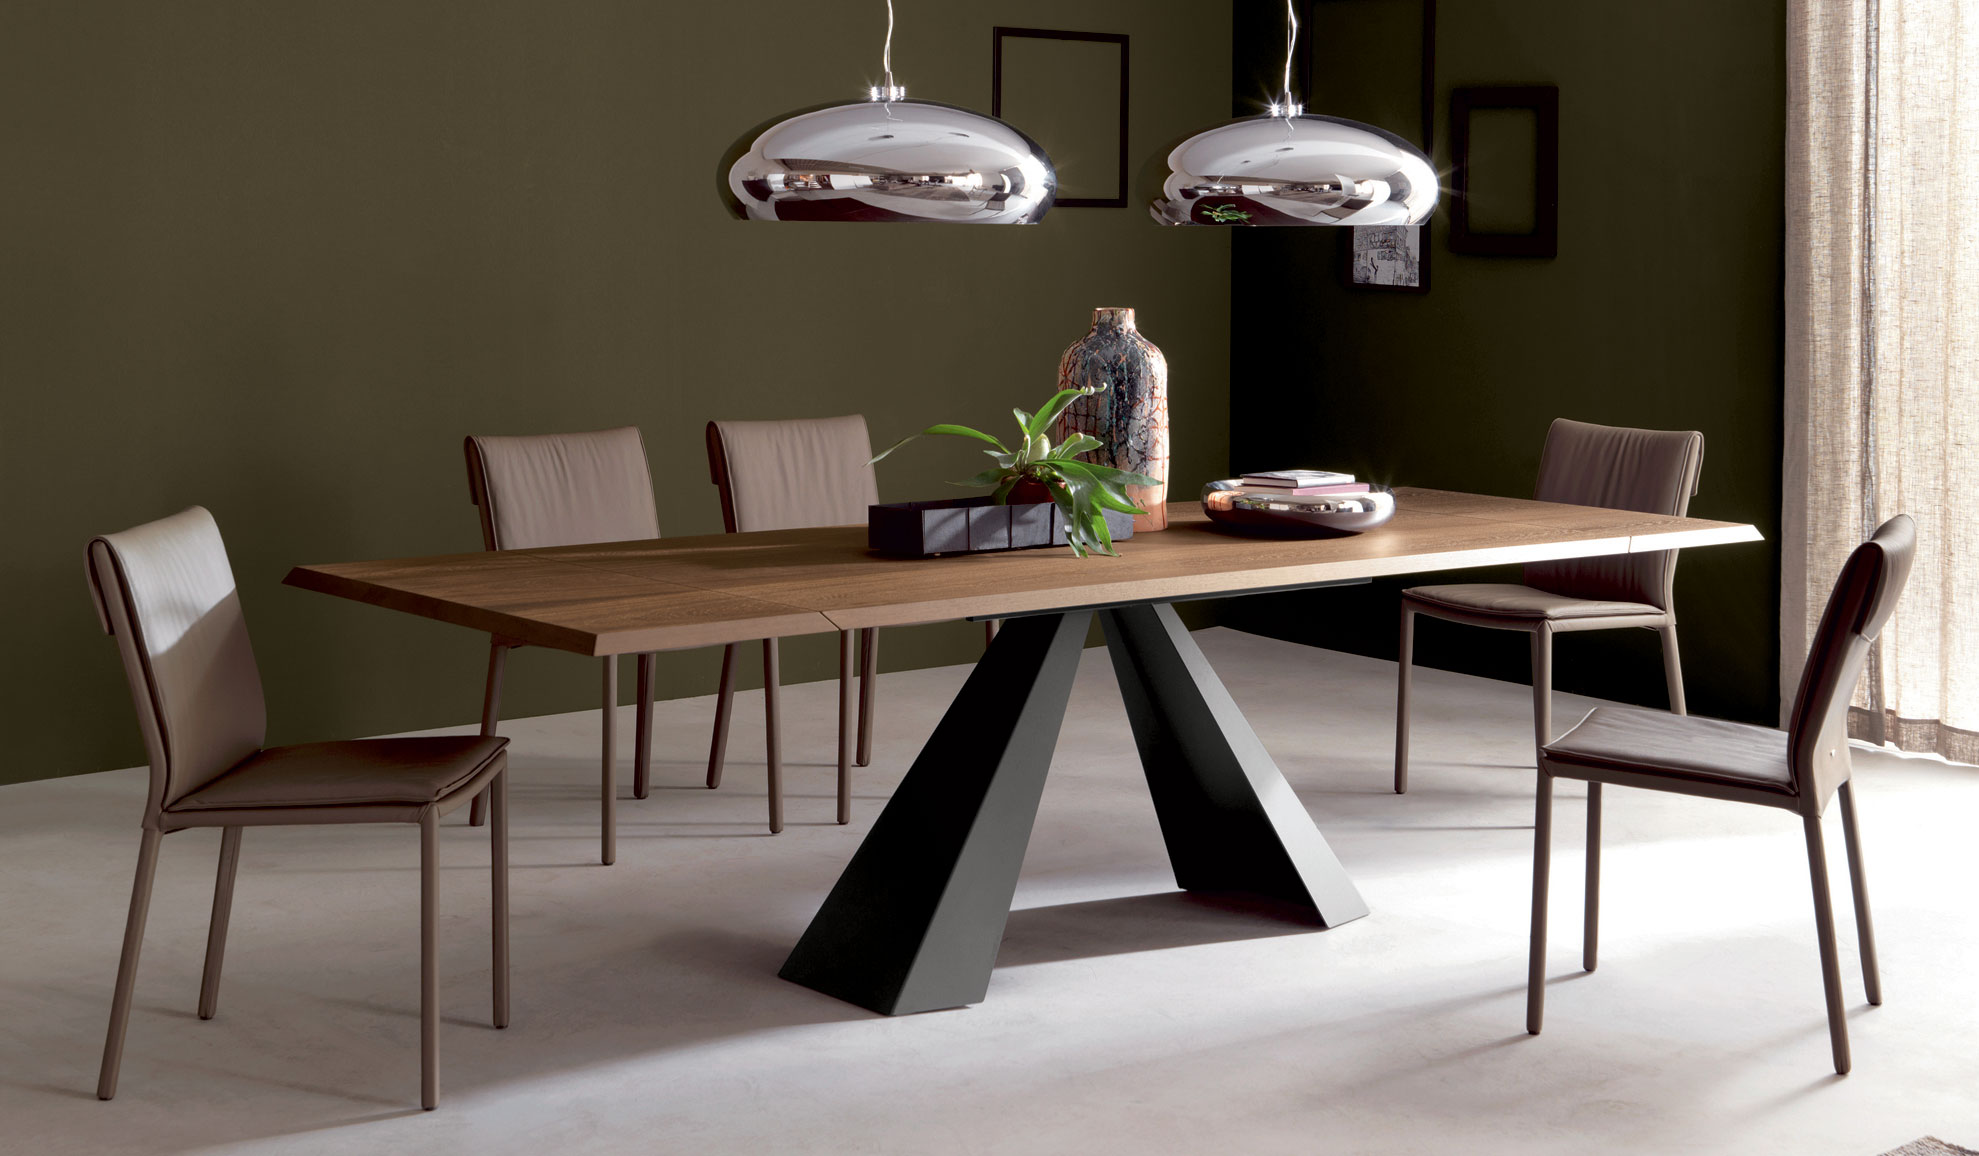 Mesa comedor extensible eliot cattelan en for Mesas y sillas de salon modernas